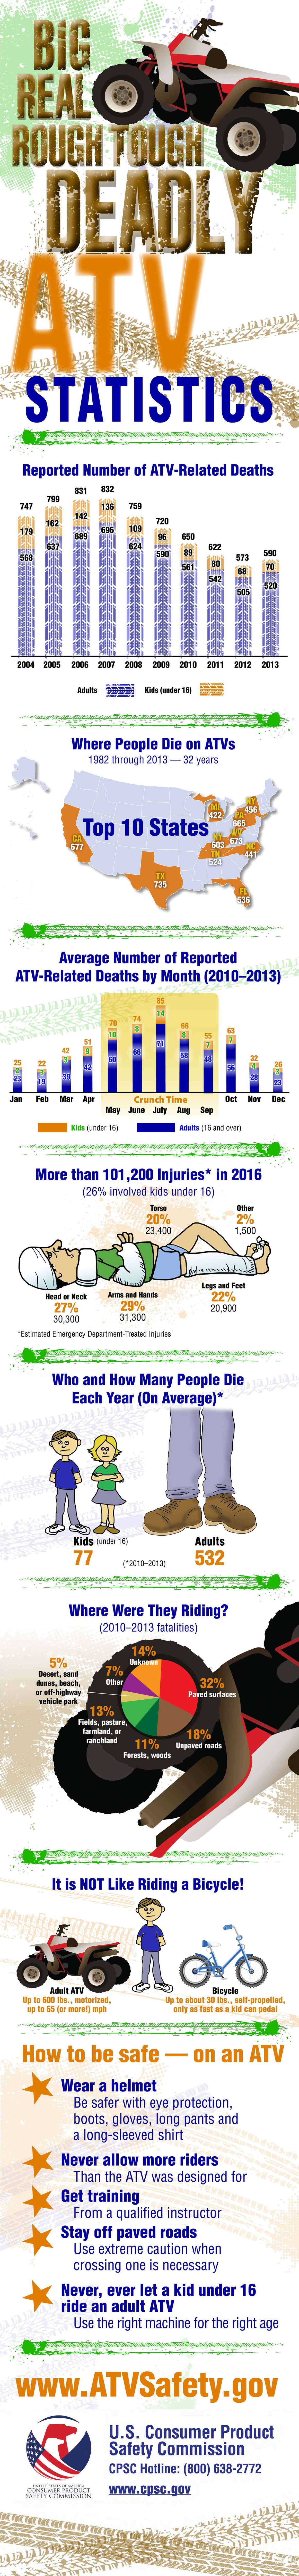 ATV Safety Infographic - 2016 Data